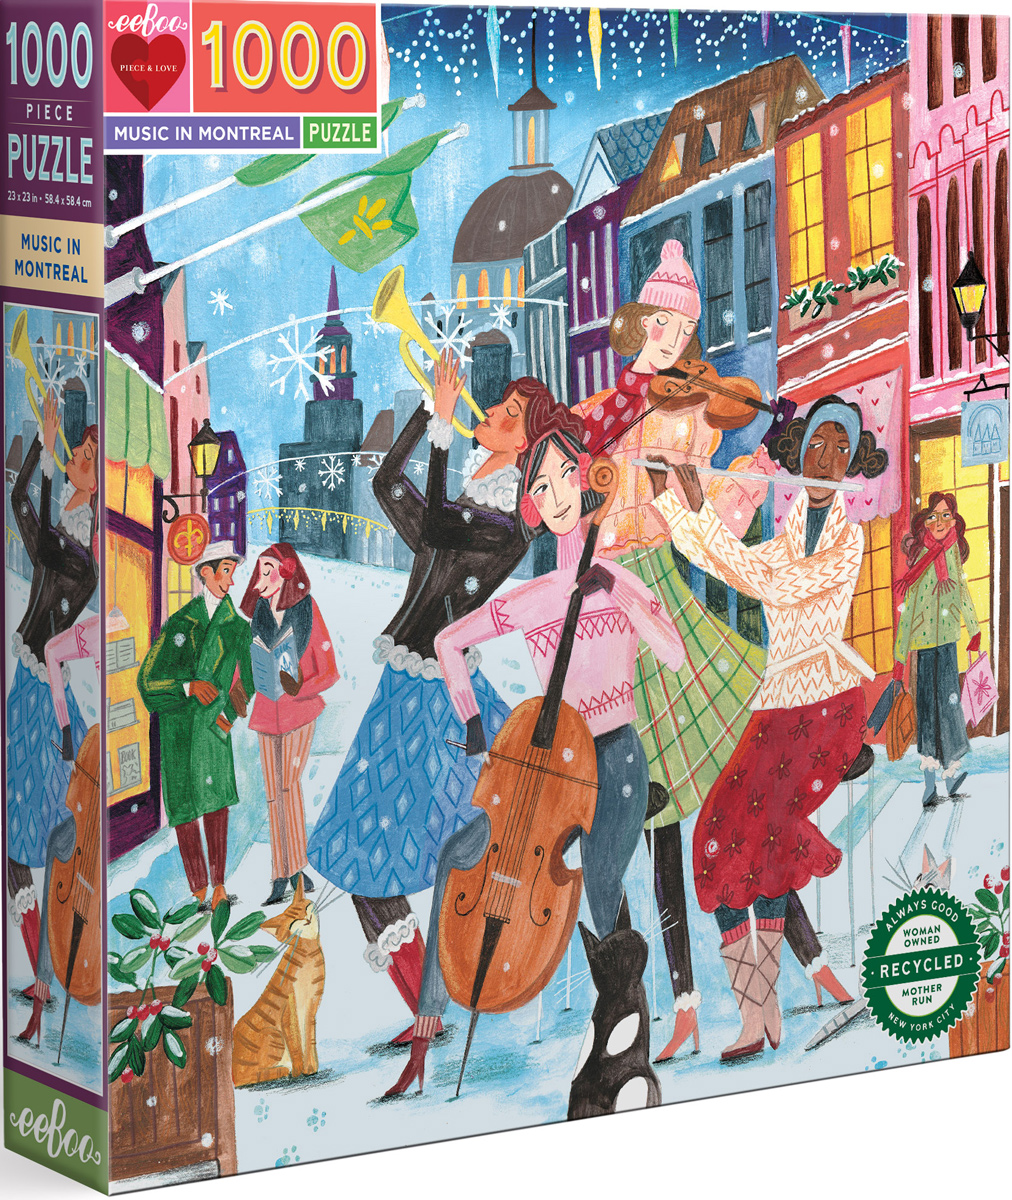 Music in Montreal Music Jigsaw Puzzle